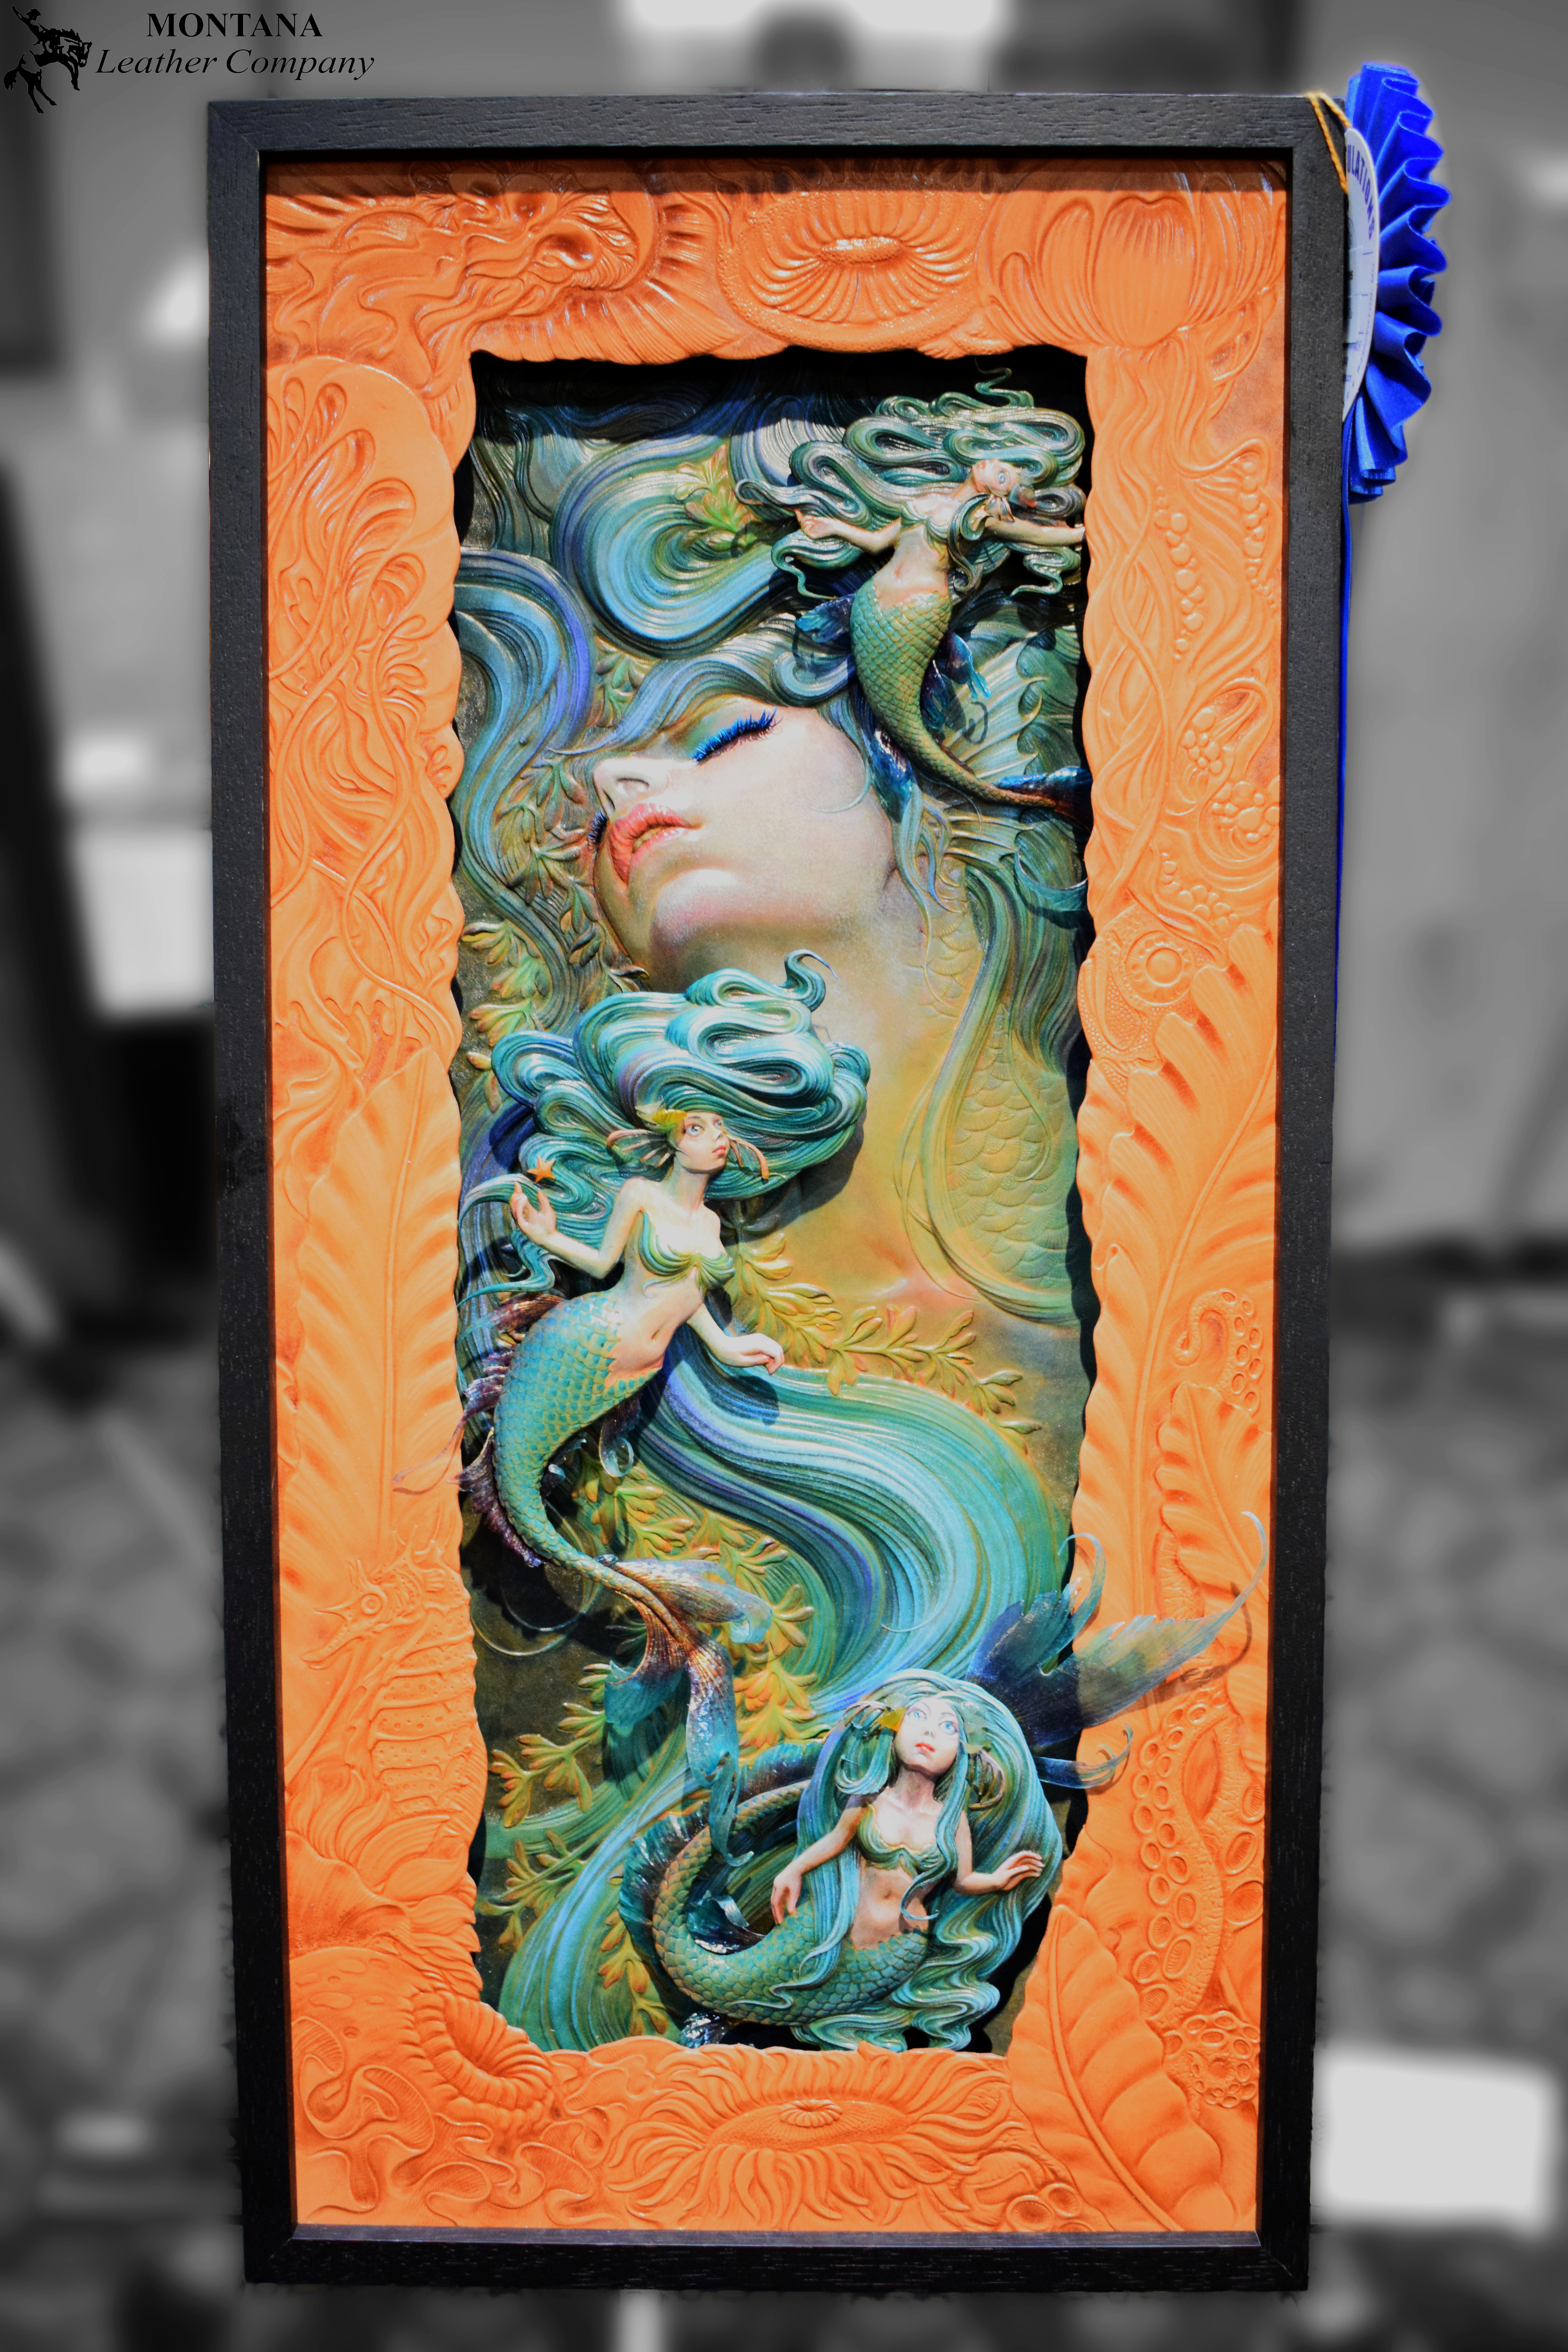 mermaid artwork, leather art